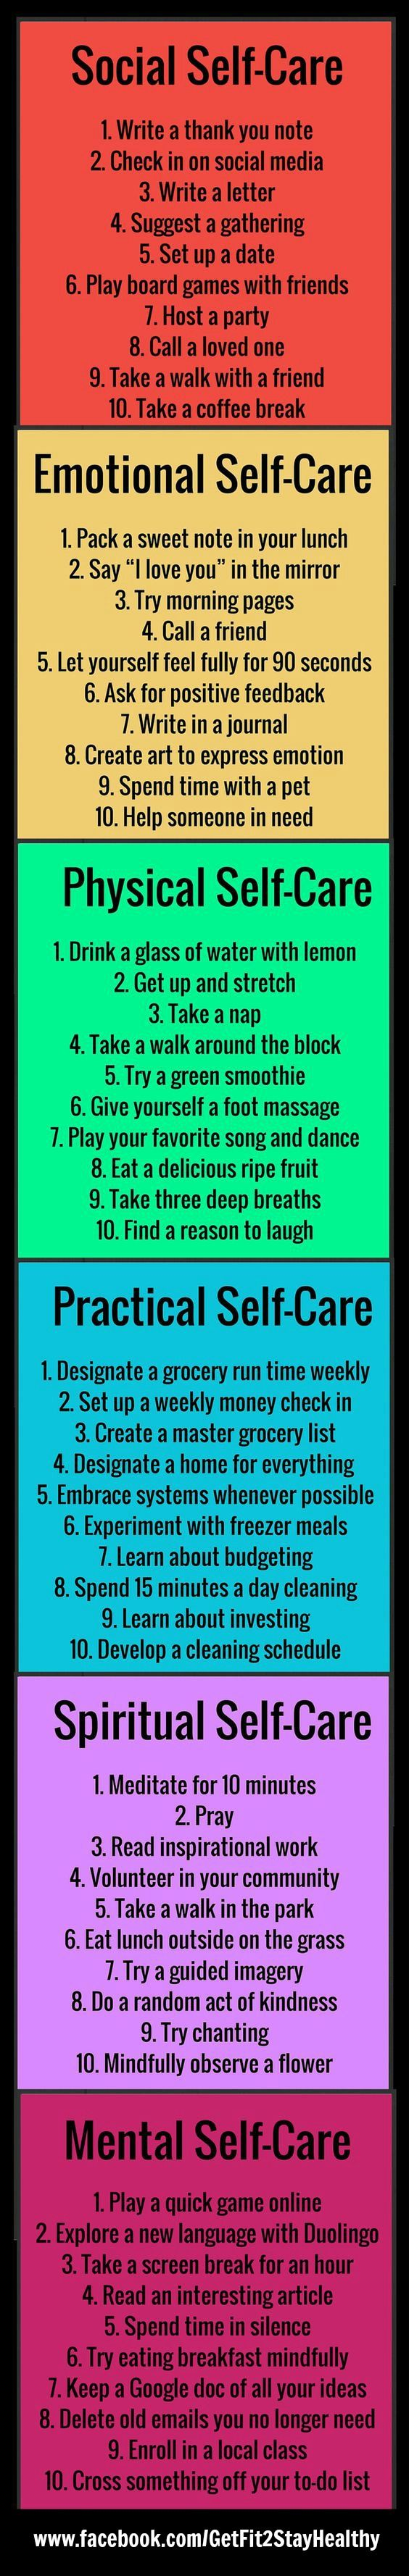 Getting Fit is all about nutrition, exercise and self-care (mentally).  #GetFit2StayHealthy today! Need help?  Let's connect!  Email me with a list of your goals and lifestyle to getfit2stayhealthy@gmail.com.   #GetFit2StayHealthy #HealthTips